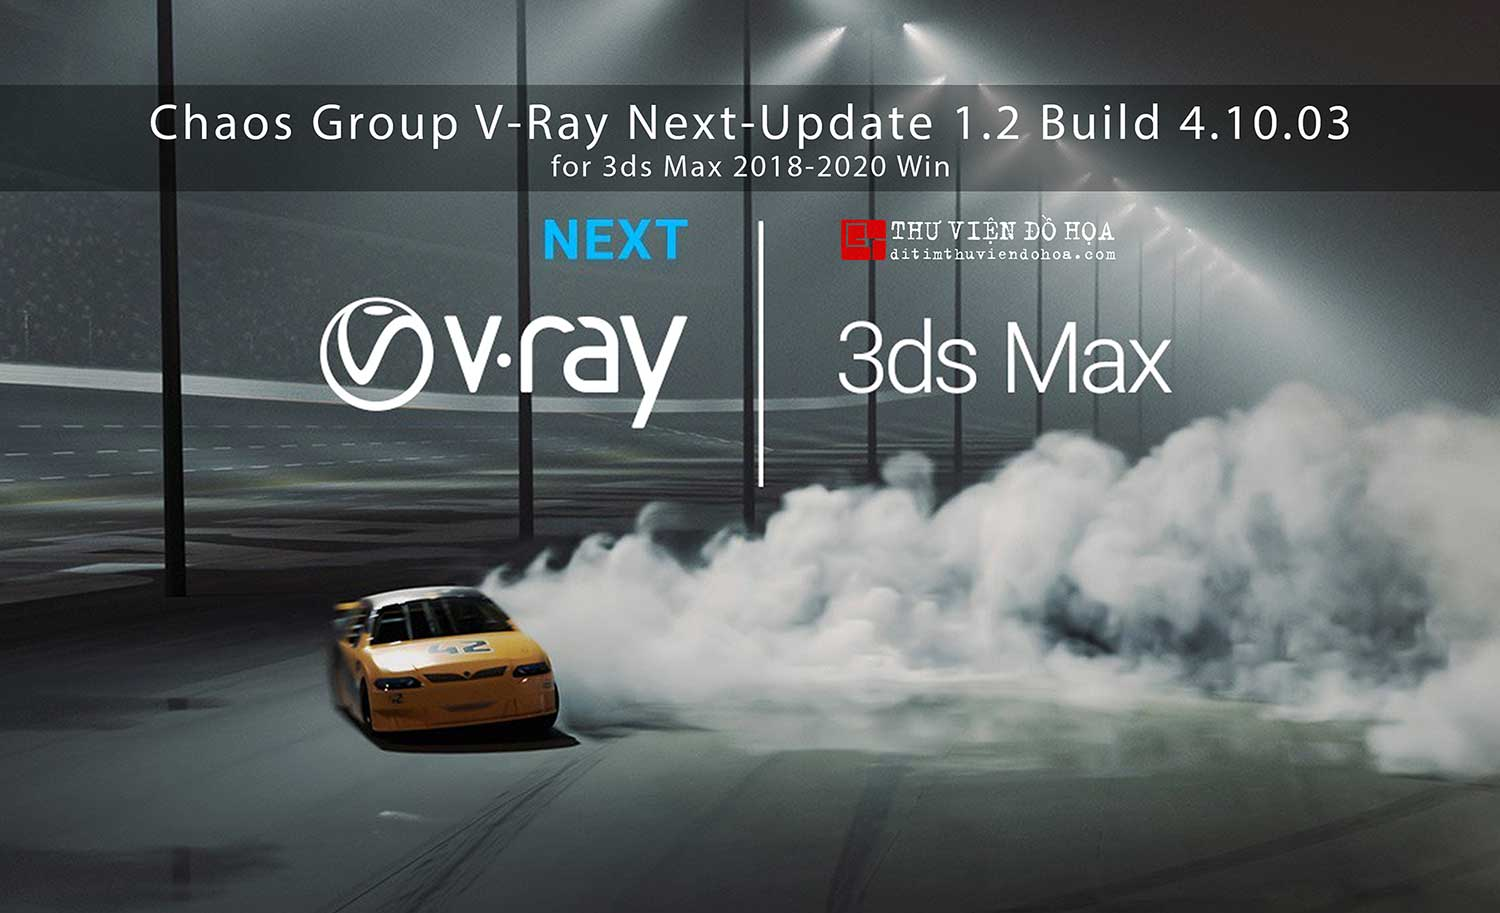 Chaos Group V-Ray Next-Update 1.2 Build 4.10.03 for 3ds Max 2018-2020 Win_Ditim